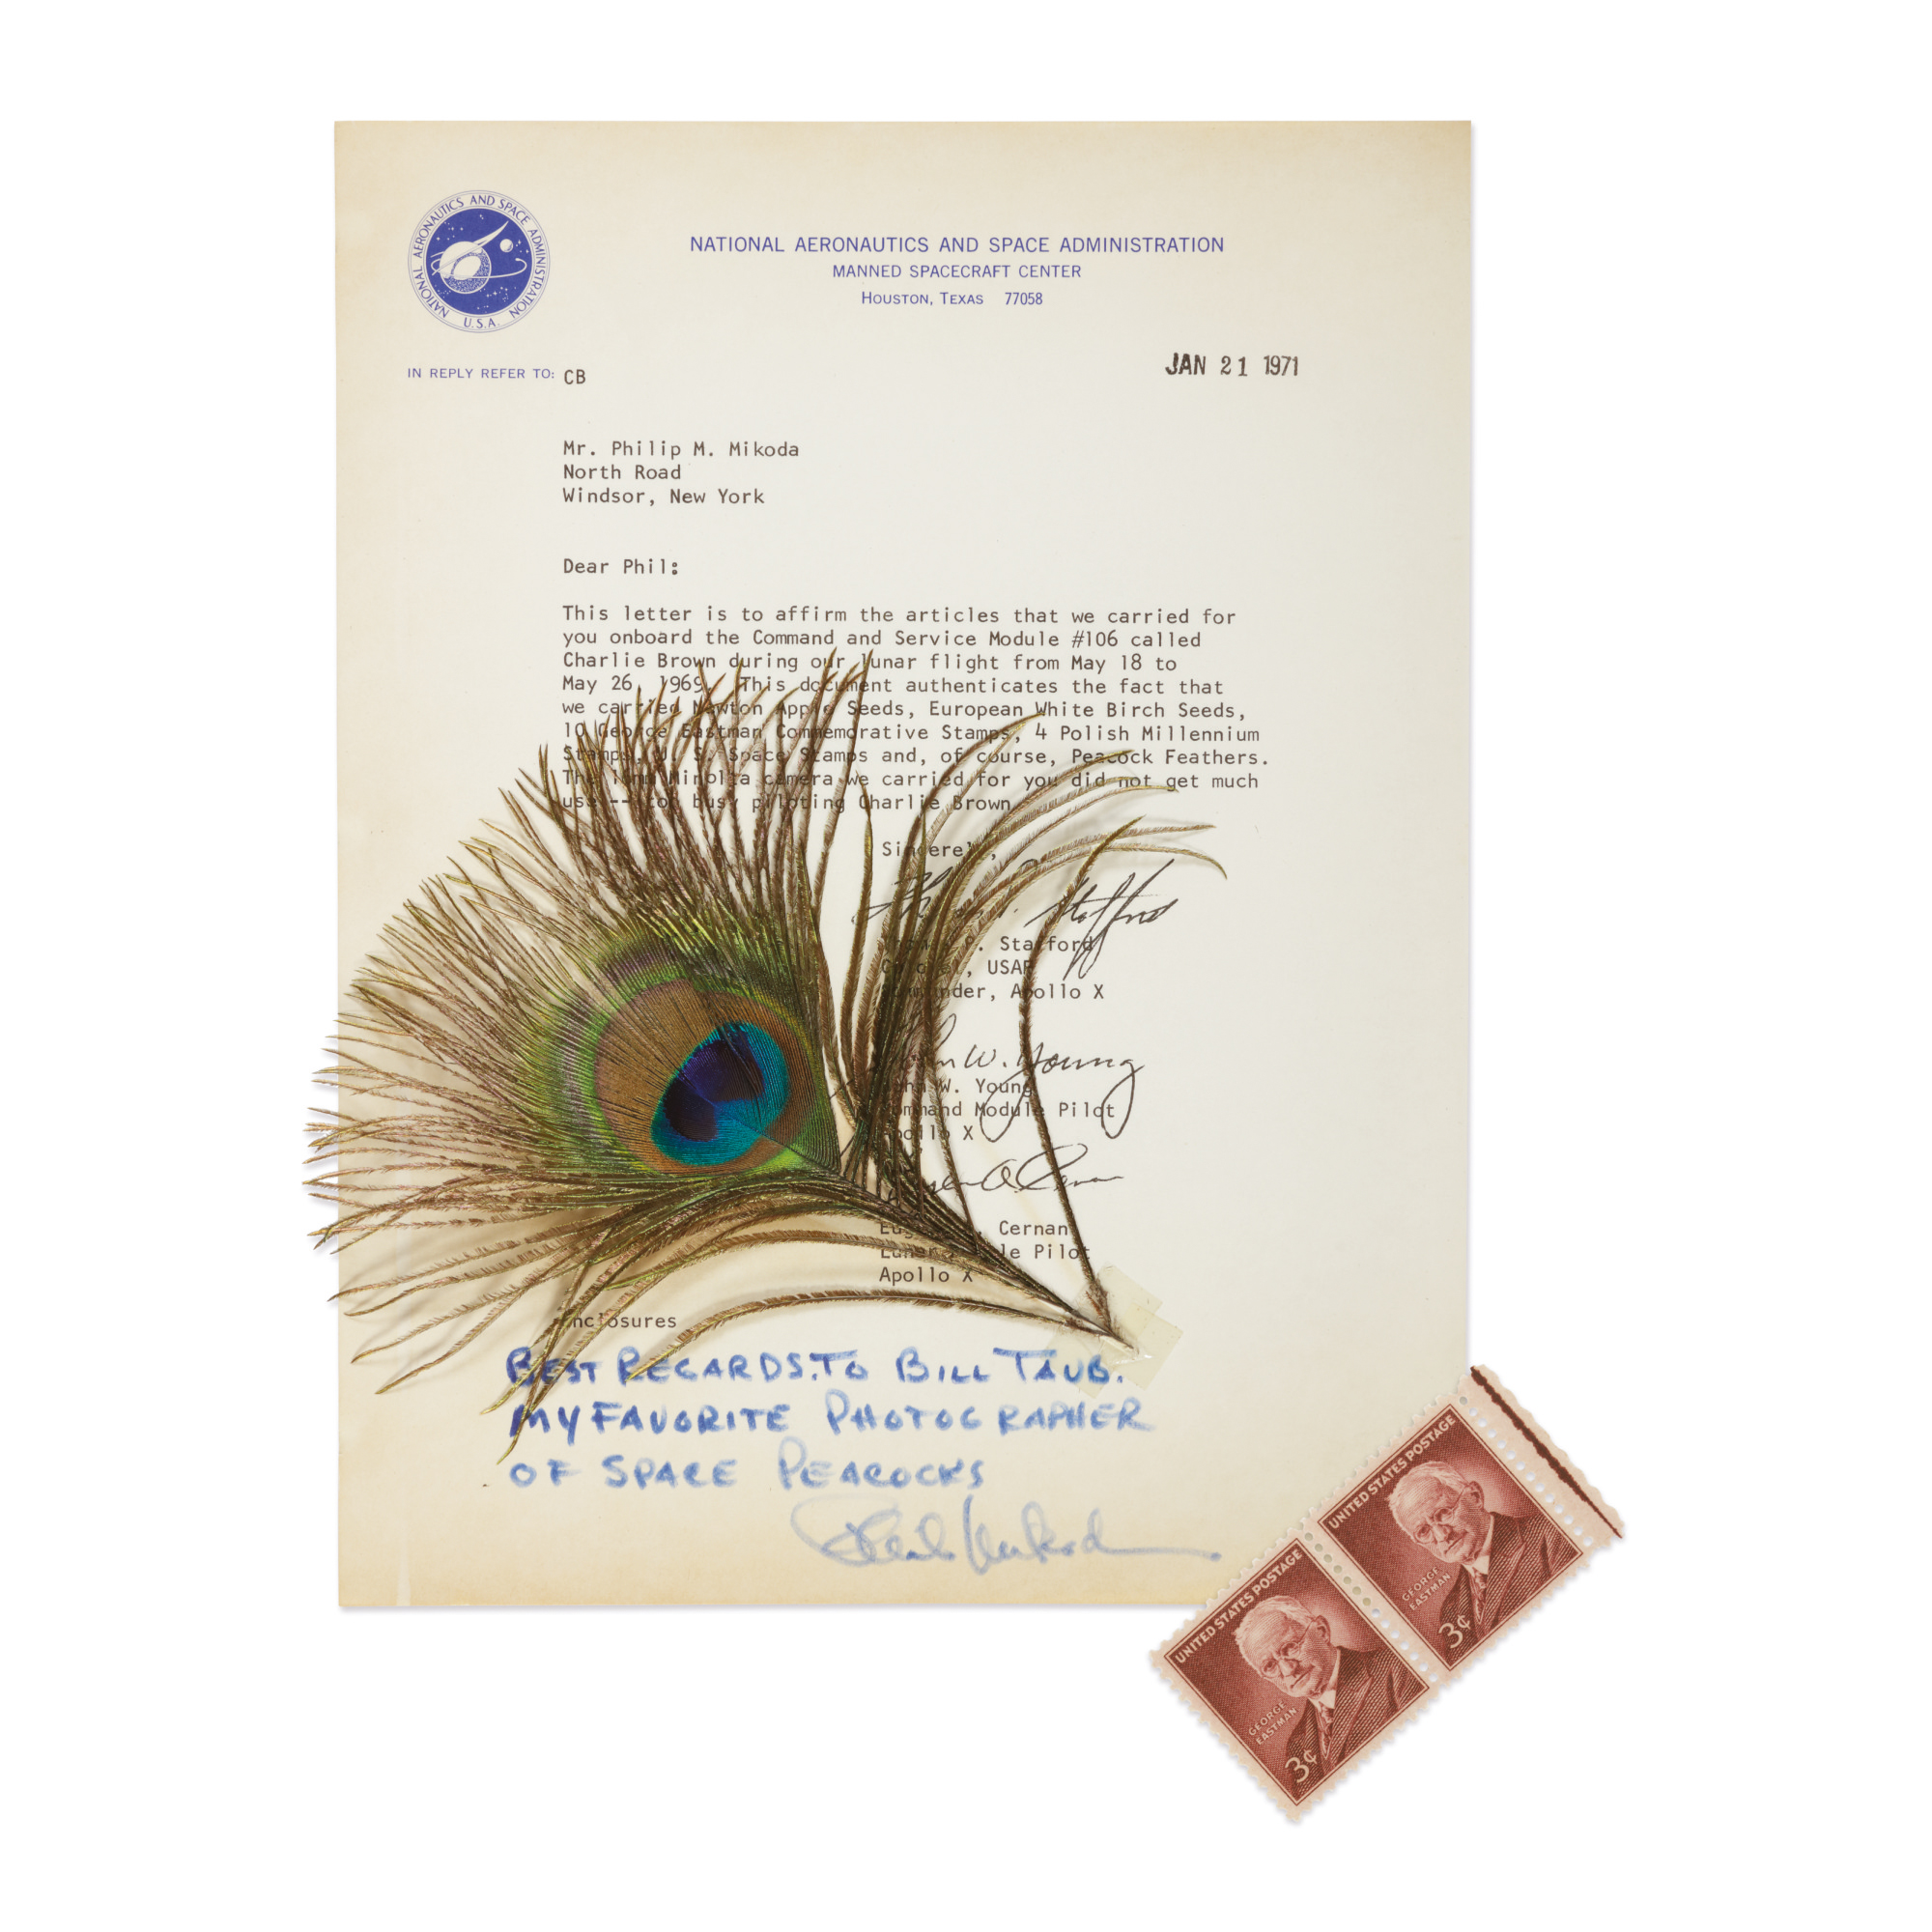 [APOLLO 10]. FLOWN PEACOCK FEATHER, MOUNTED ON LETTER SIGNED BY STAFFORD, YOUNG, & CERNAN